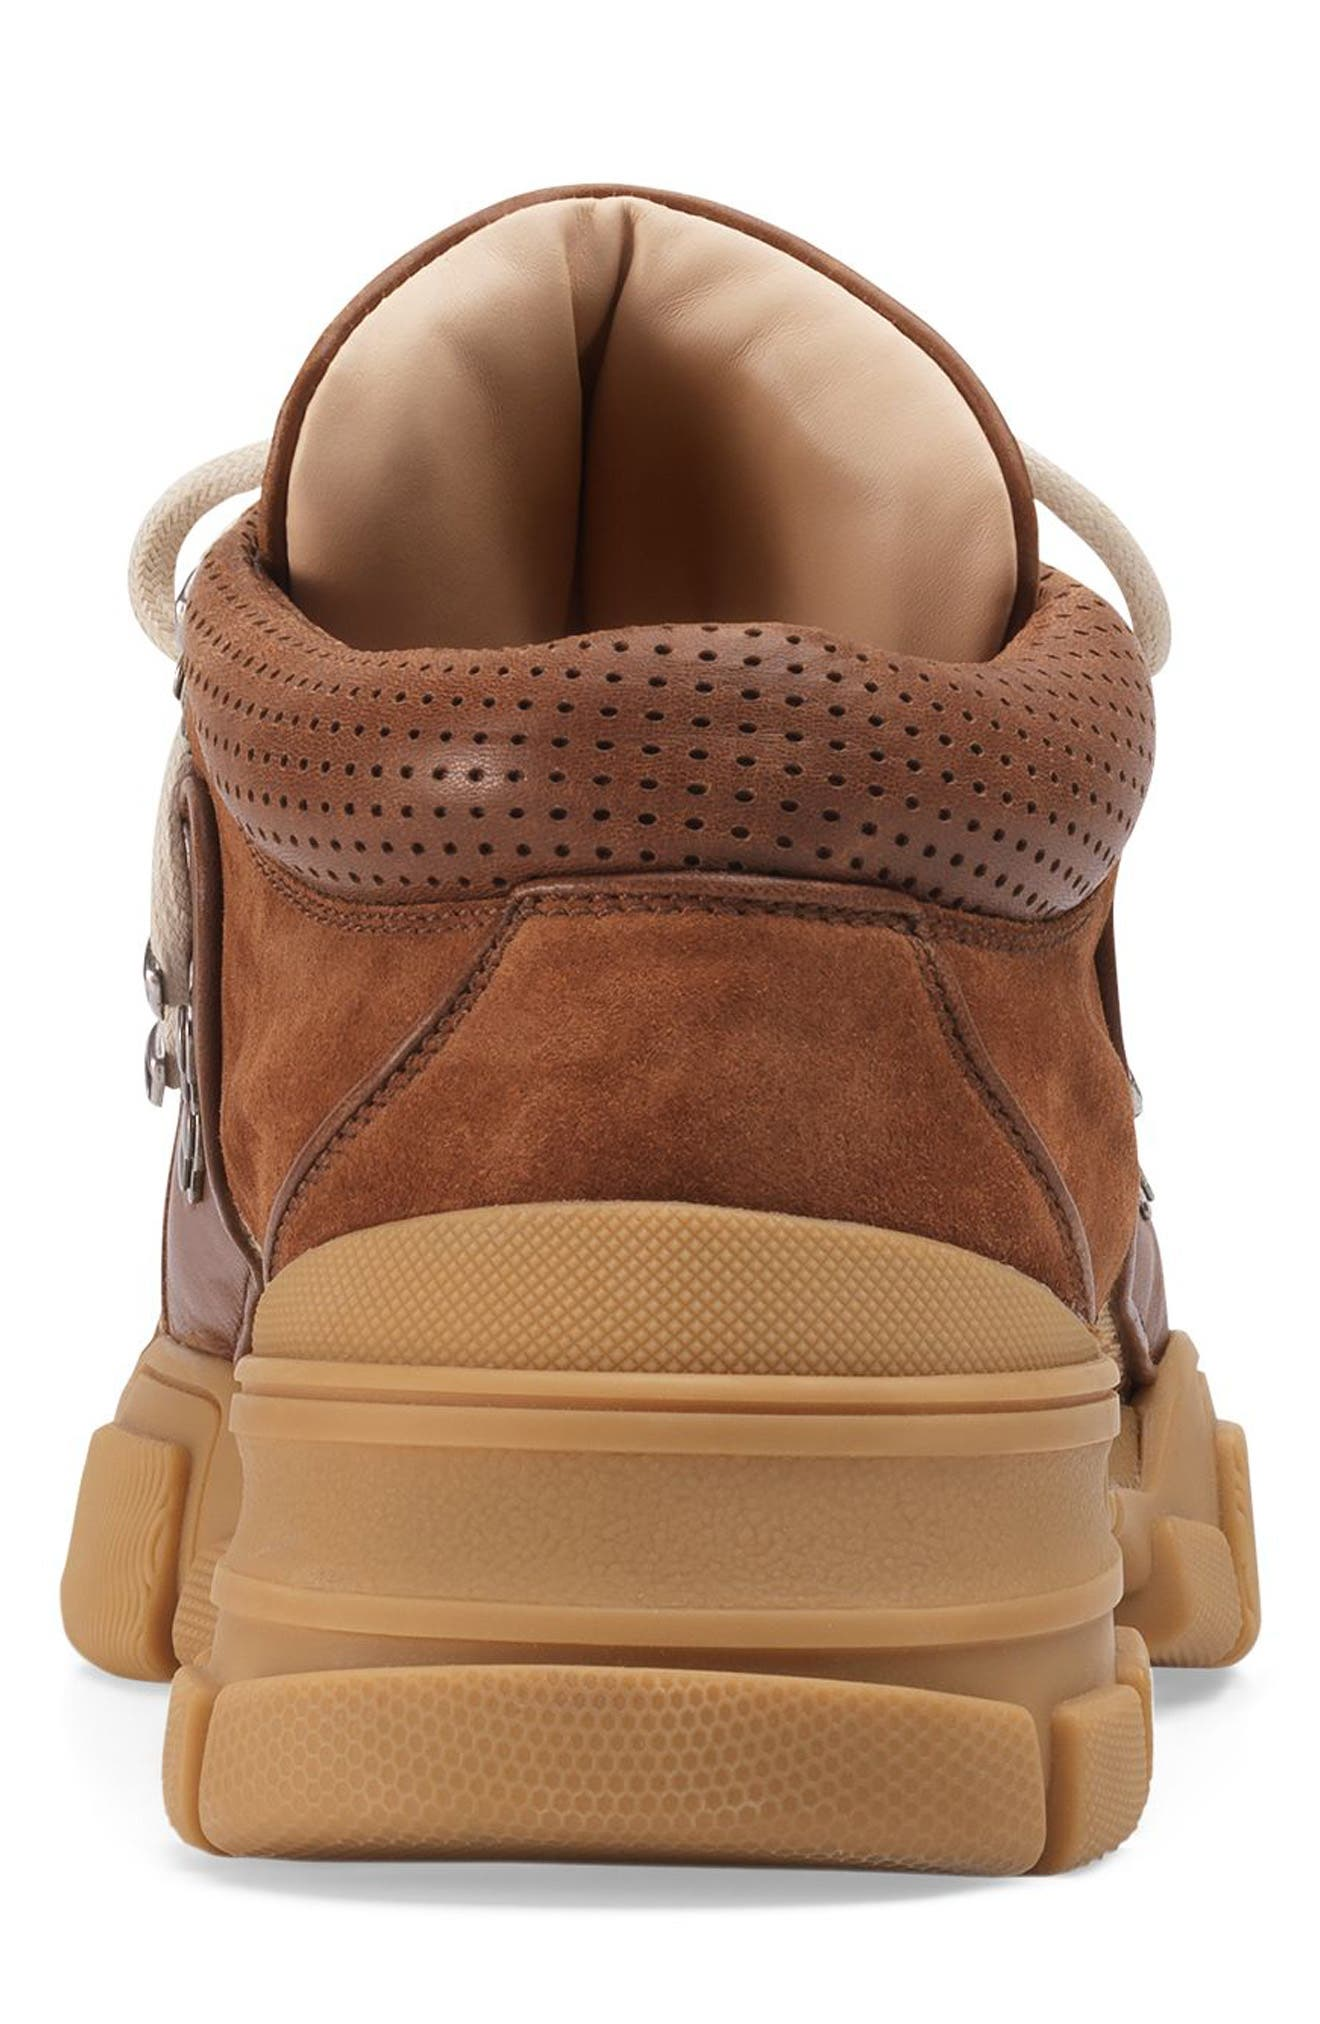 Leather & Original GG Trekking Boot,                             Alternate thumbnail 5, color,                             BROWN